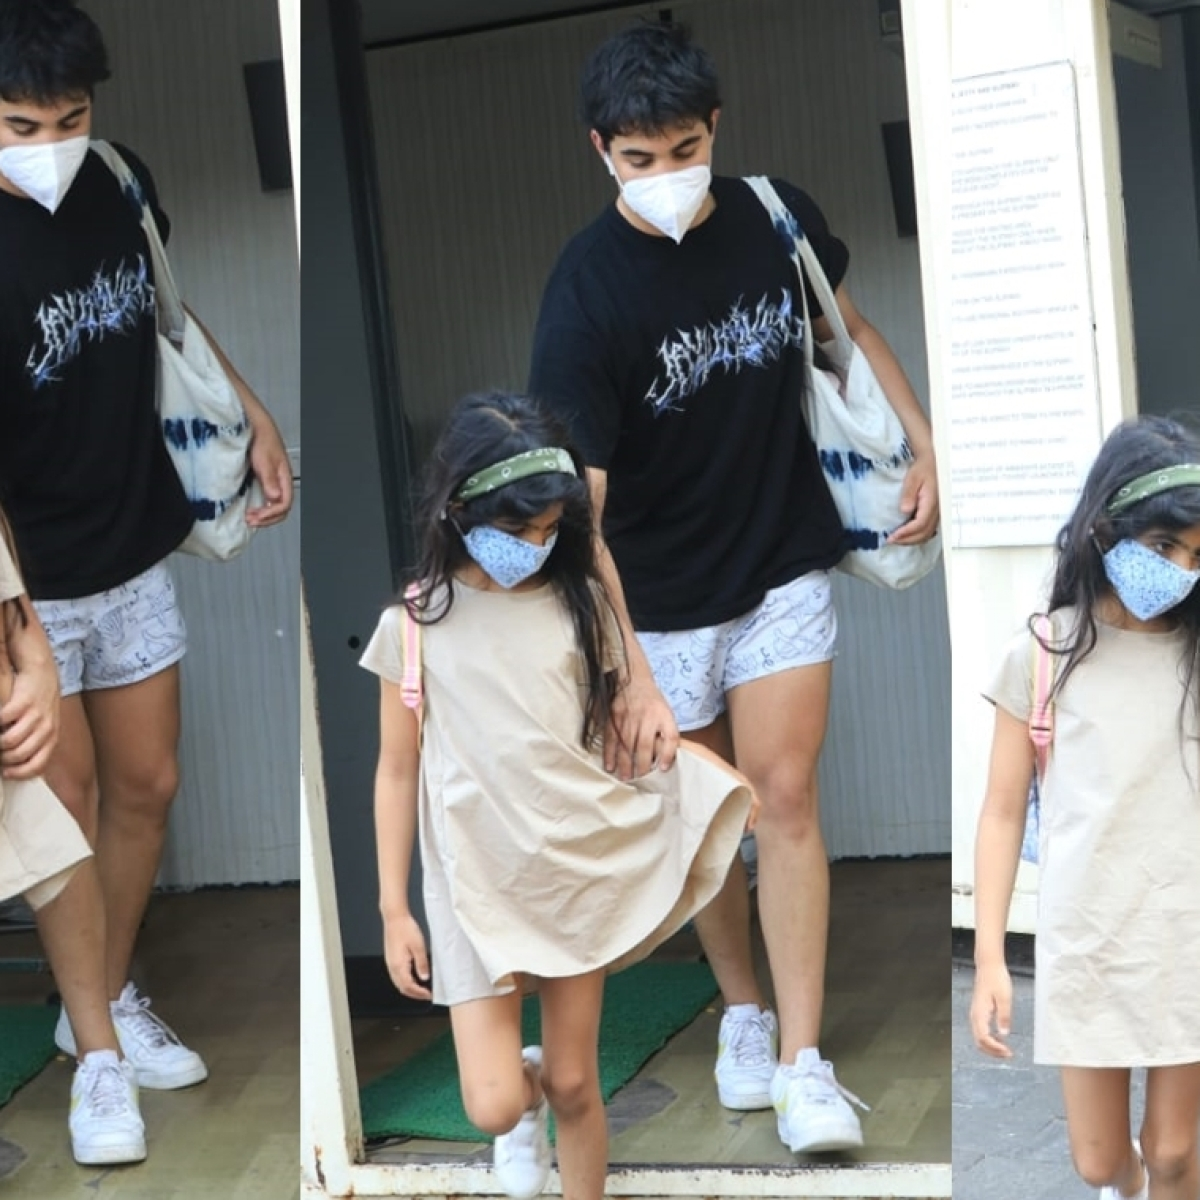 In Pics: Akshay Kumar's son Aarav is a protective brother holding Nitara's hand after surrounded by paparazzi